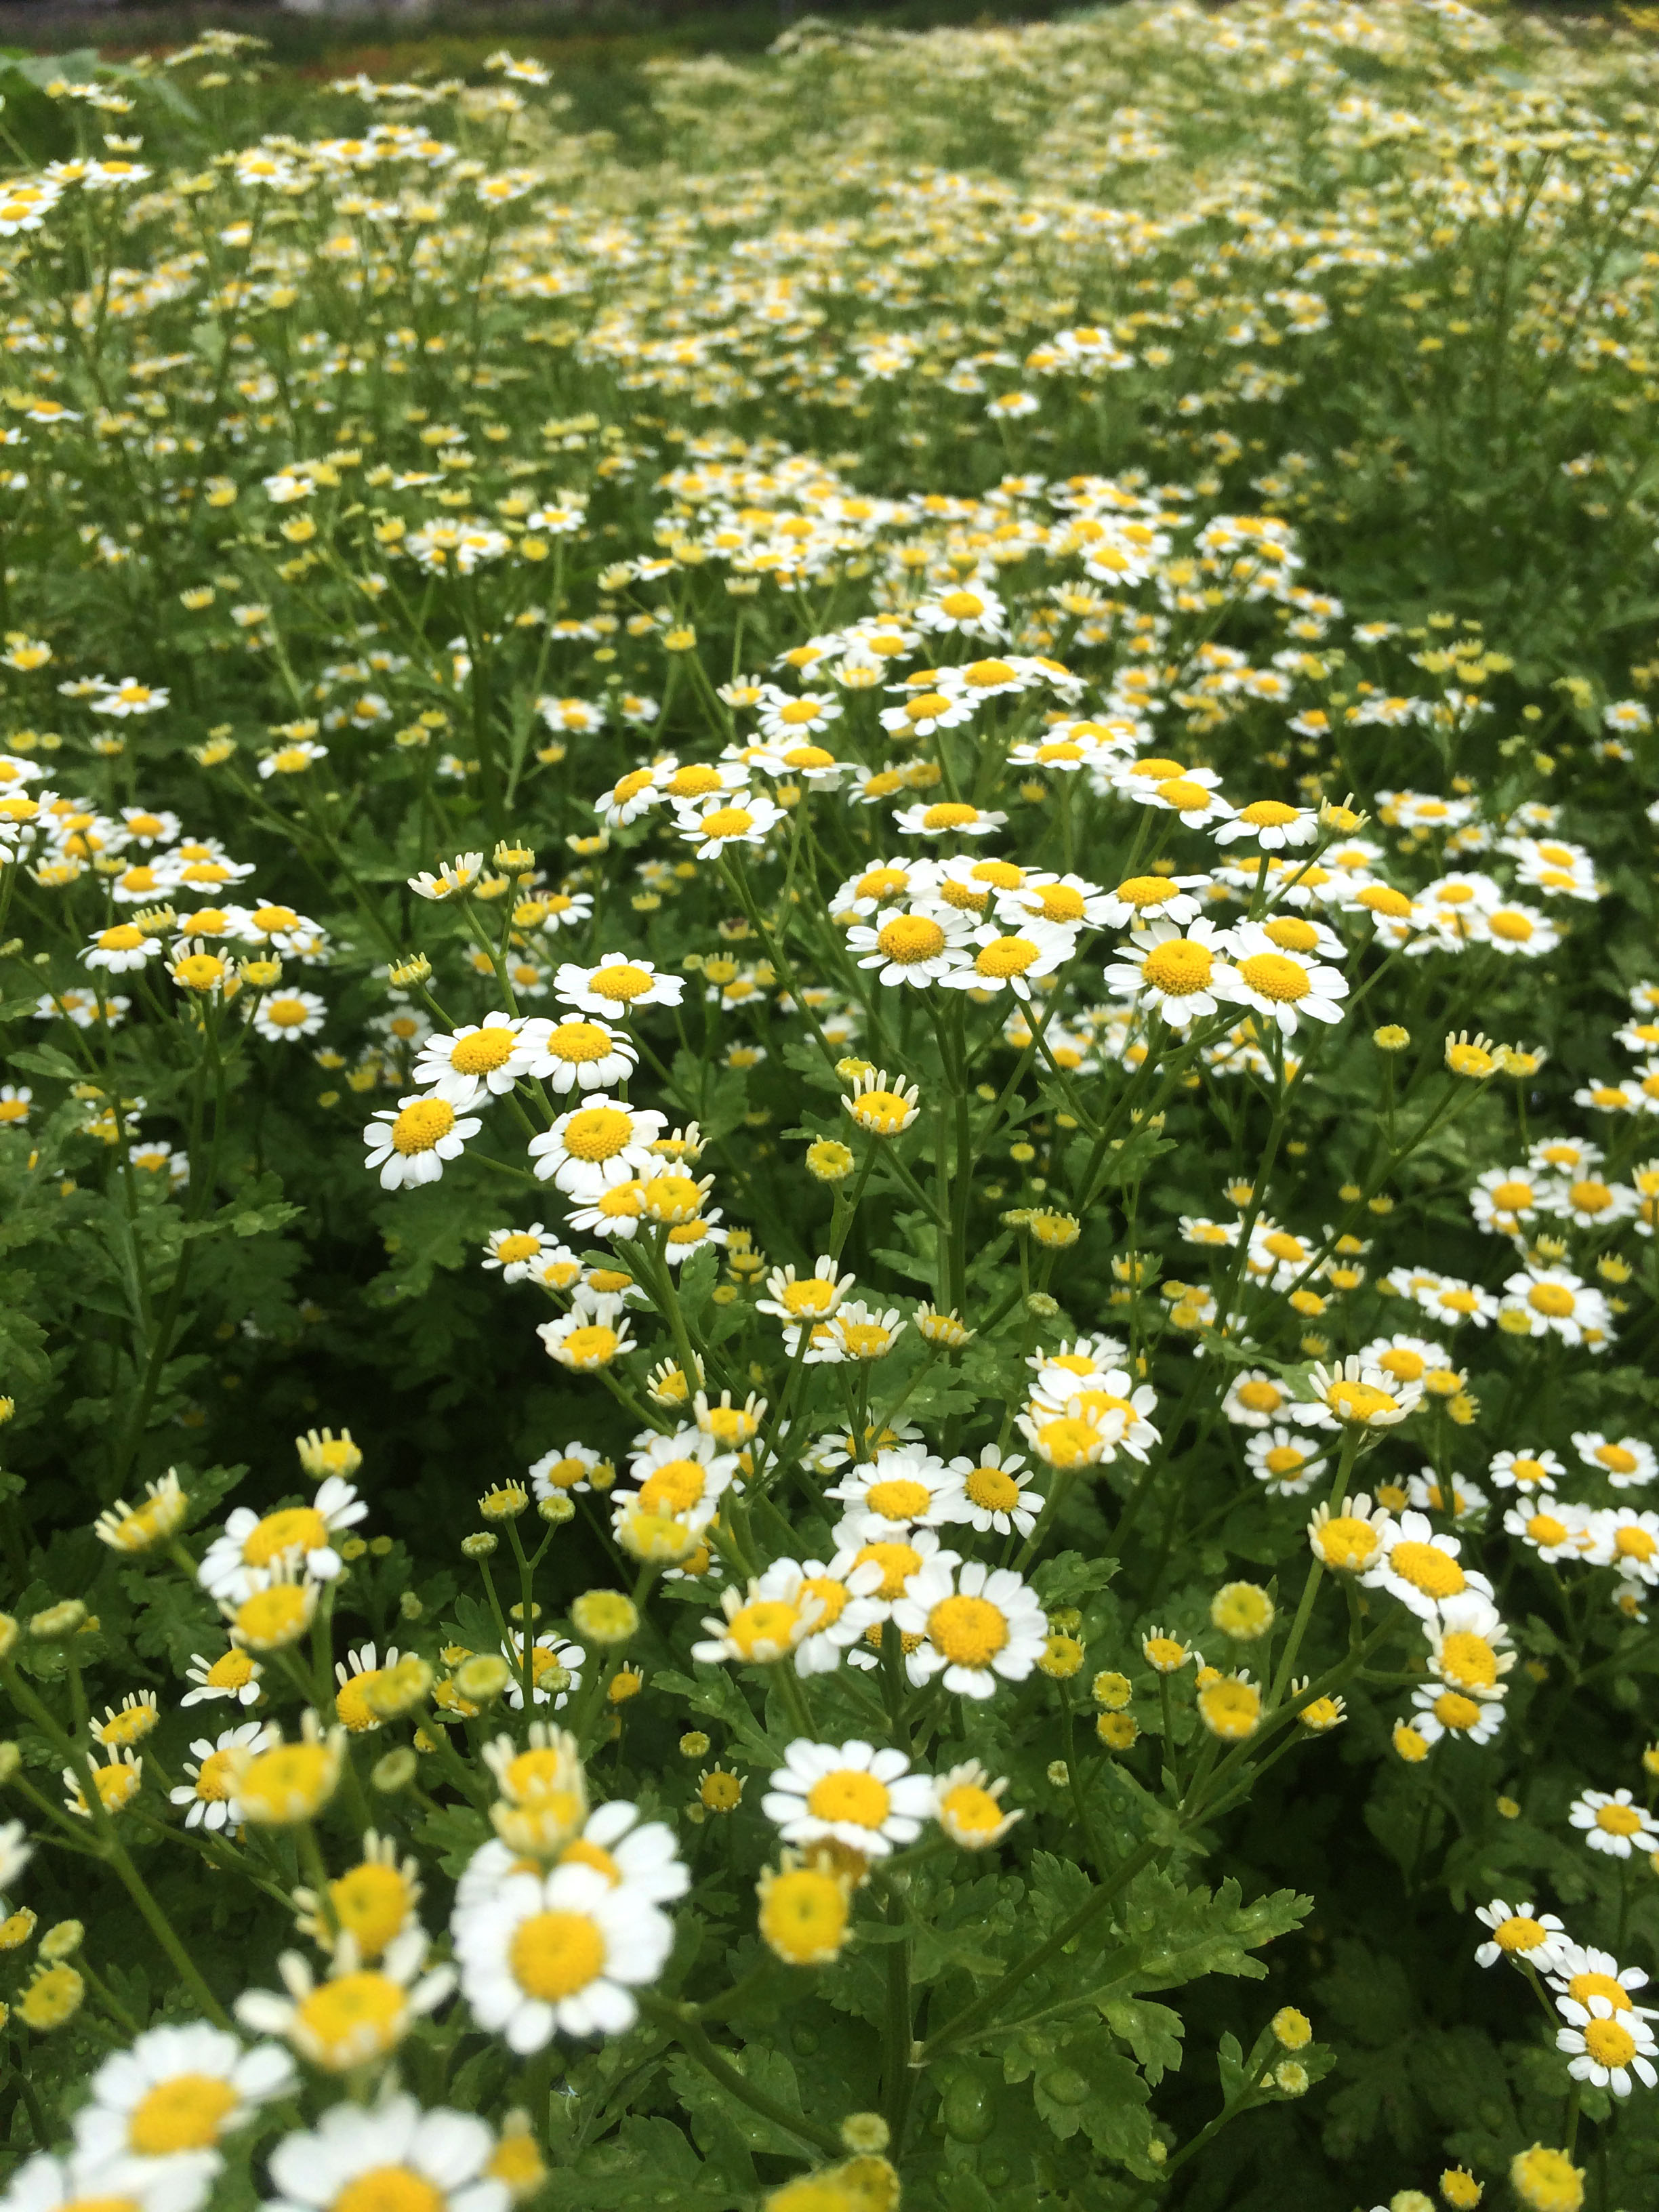 Chamomile with it's many tiny cheerful blooms adds a freshly foraged feel to any group of flowers.